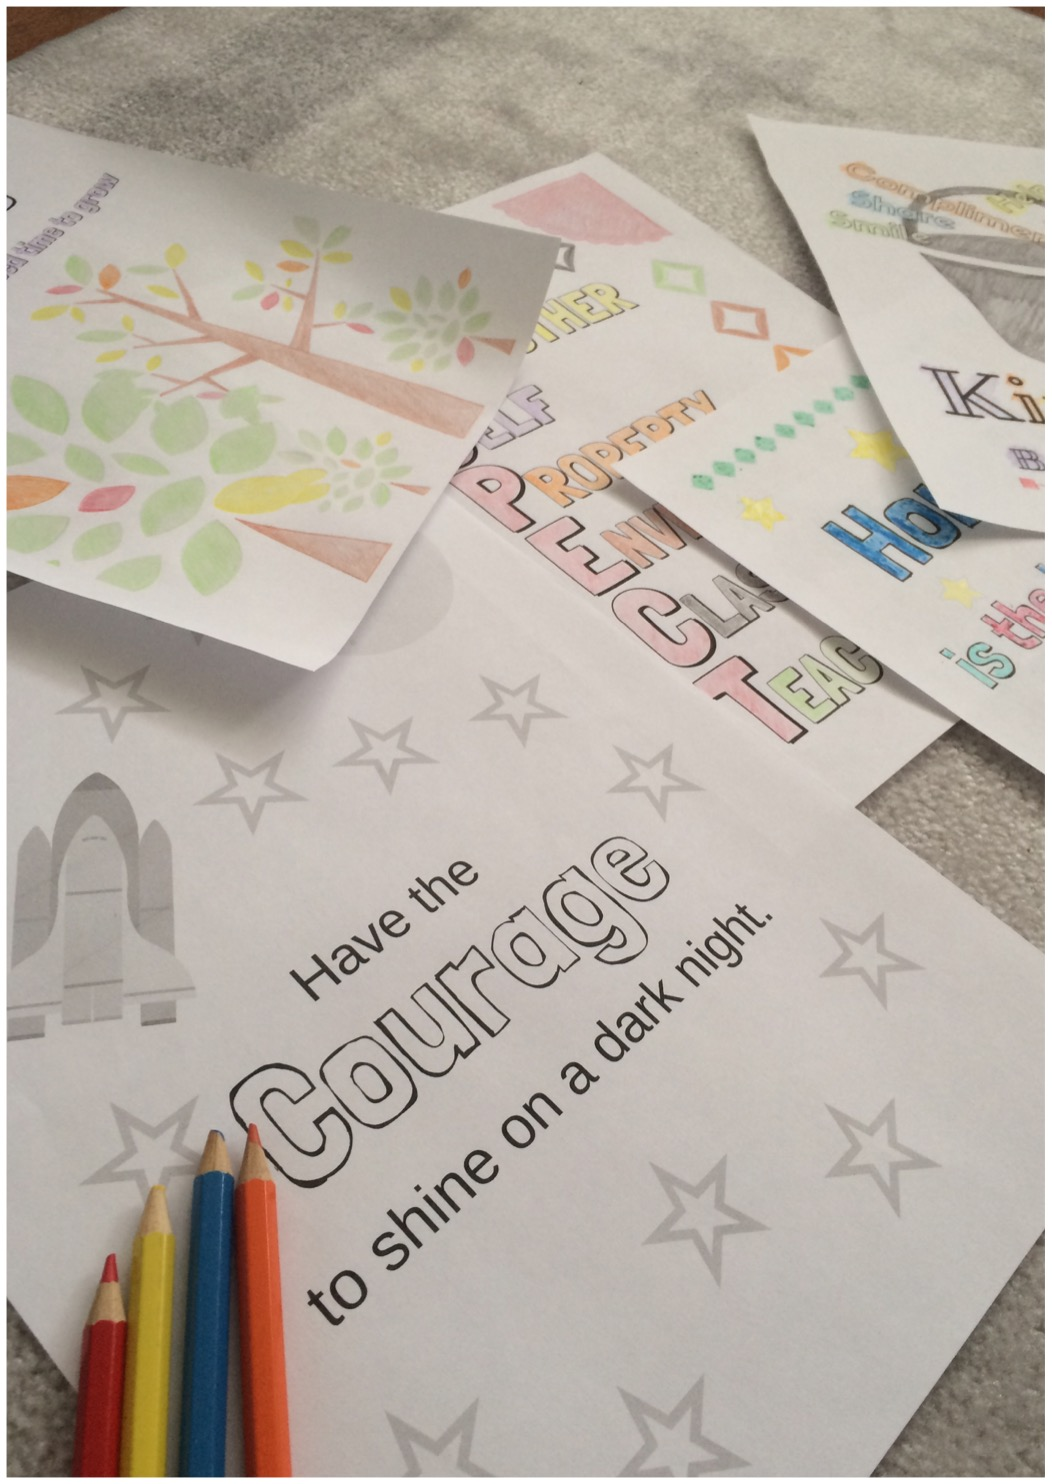 5 adorable coloring pages, each with a different character trait you want your students to have! Your students will love coloring these wonderful pages, while contemplating their meaning. Includes: patience, honestly, kindness, courage and respect.